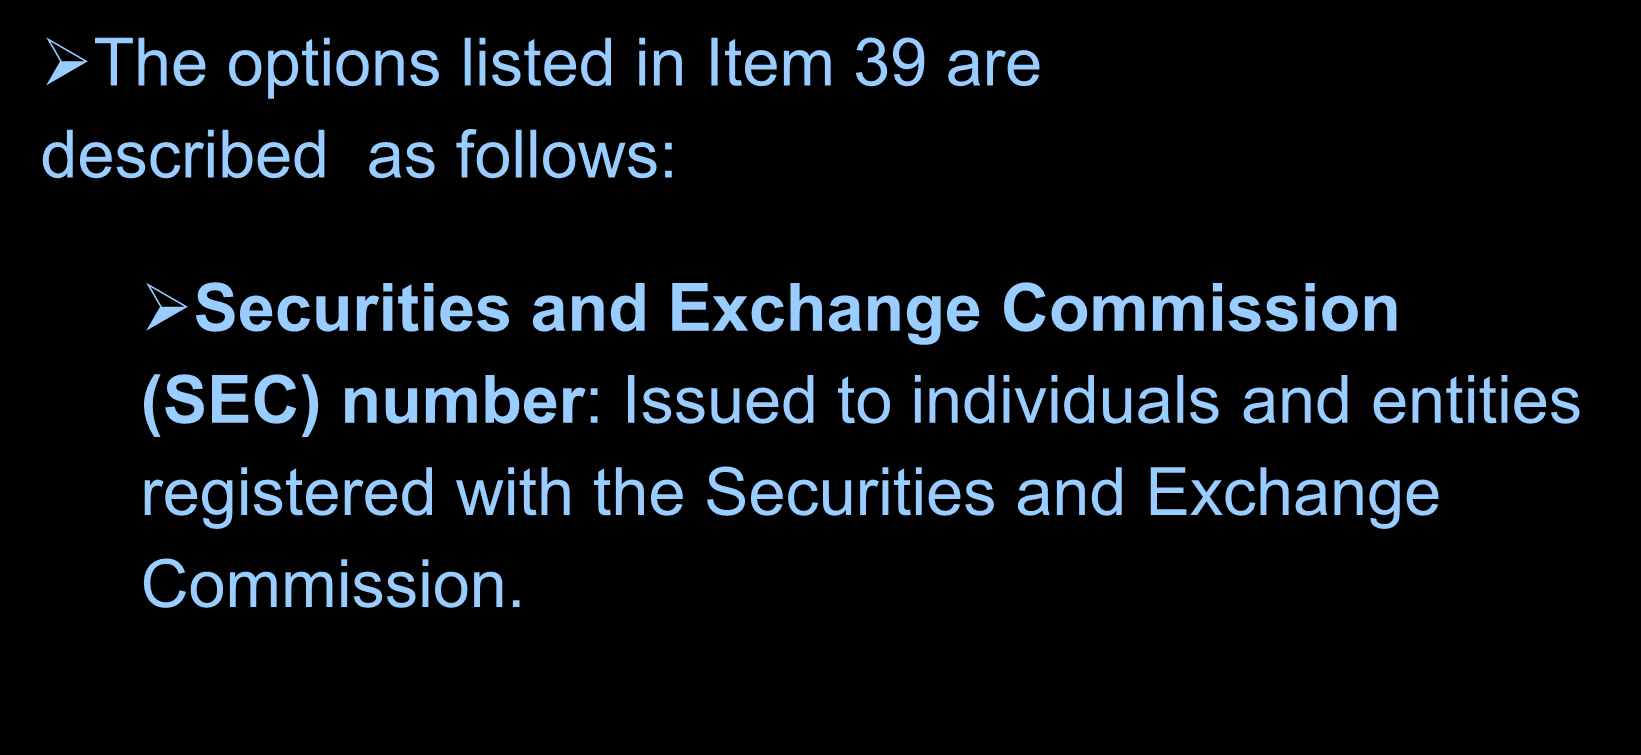 Financial Institution Identification The options listed in Item 39 are described as follows: Securities and Exchange